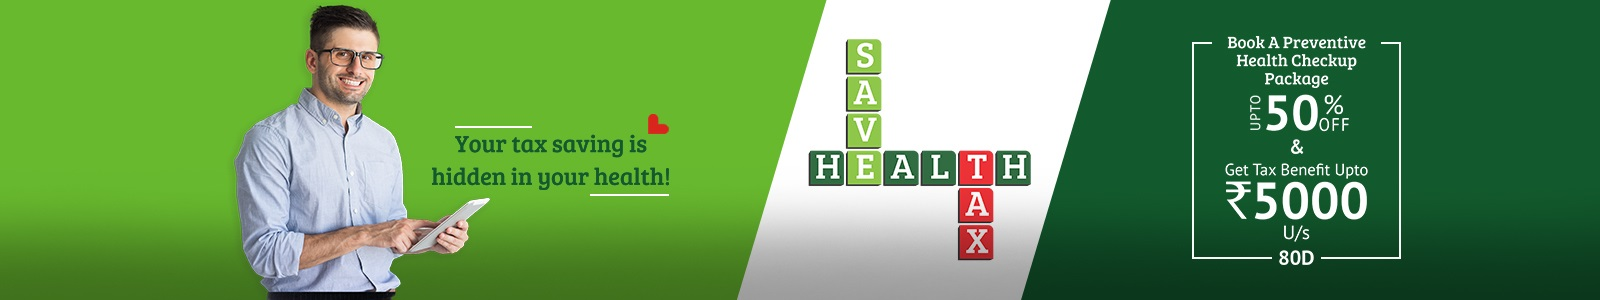 Preventive Health Packages